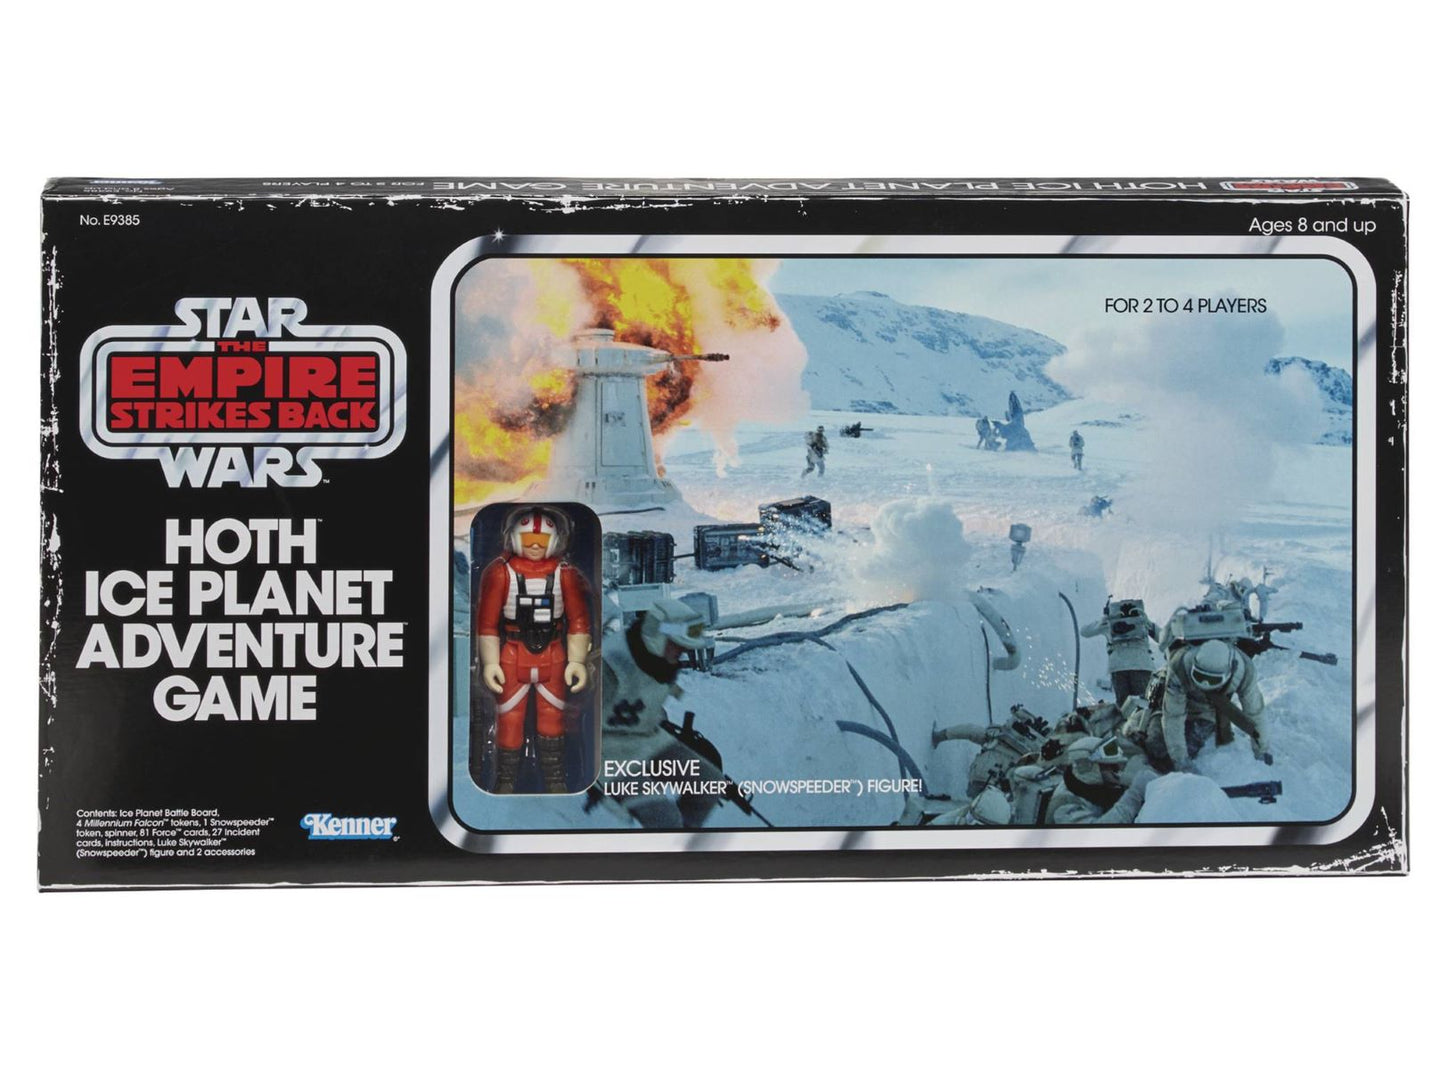 Star Wars Hoth Ice Planet Retro Game